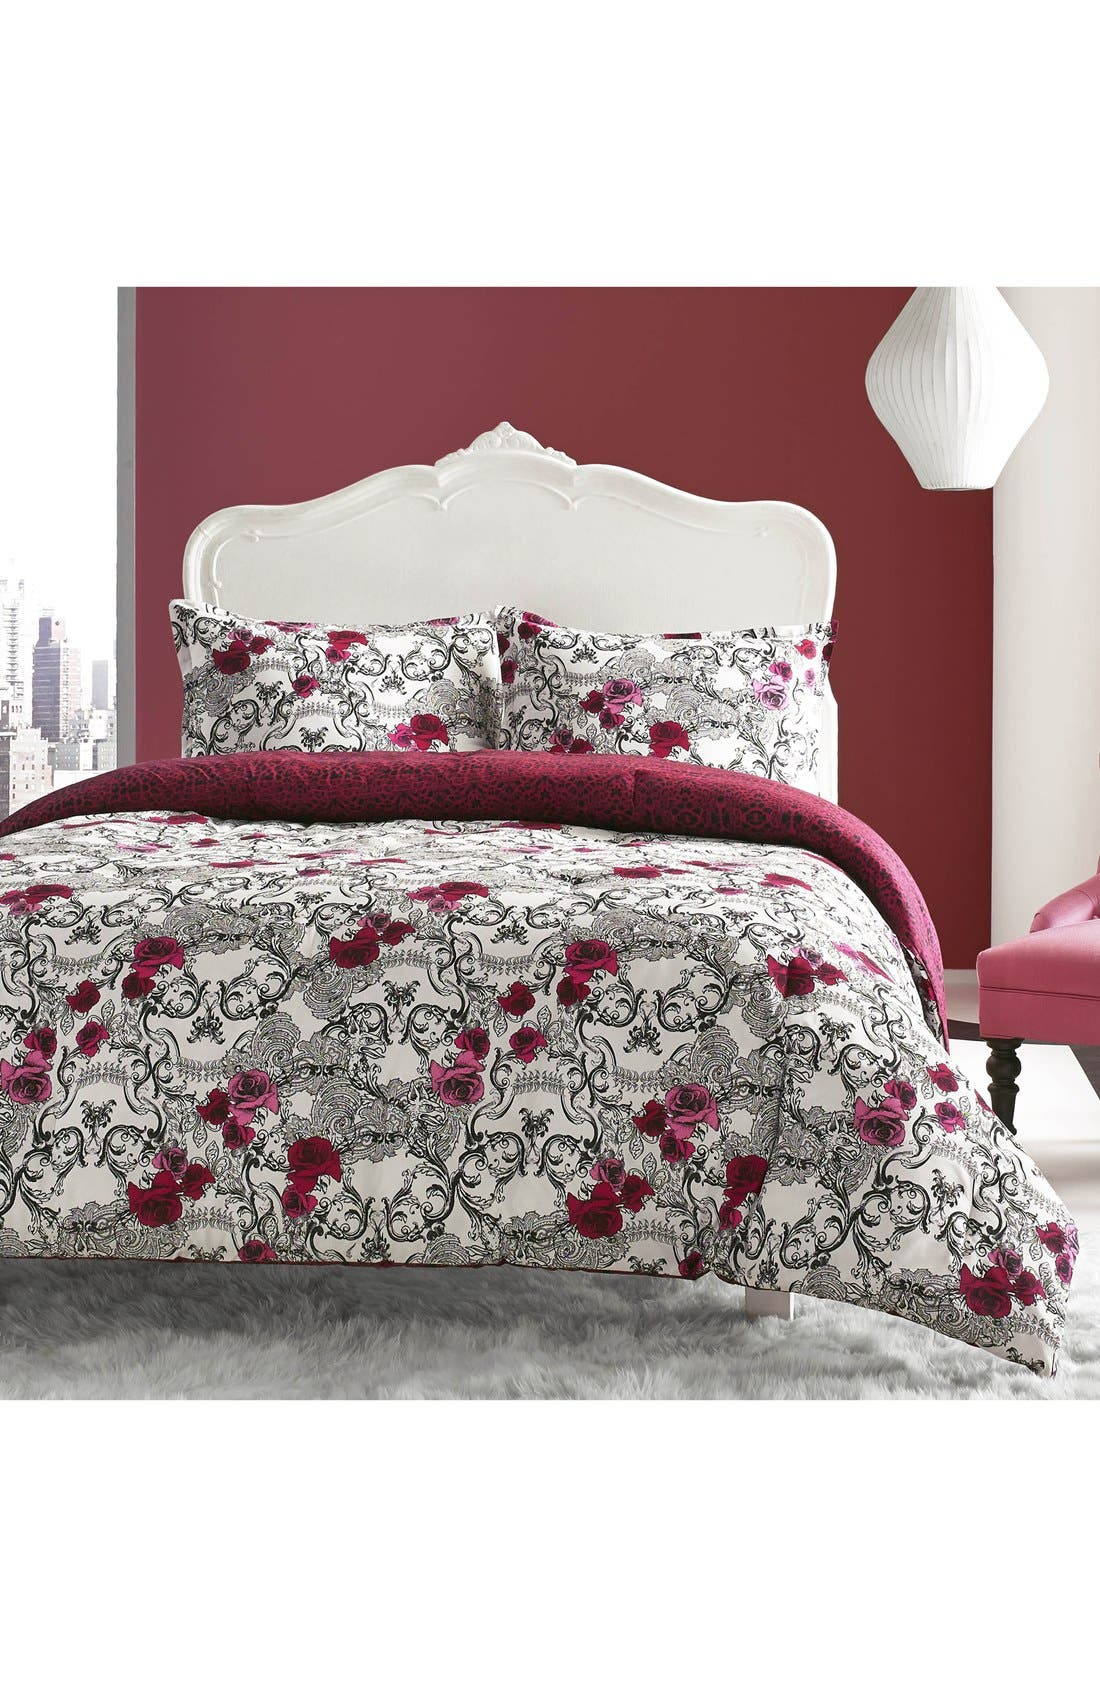 betsey johnson bedding rock out reversible comforter & sham set